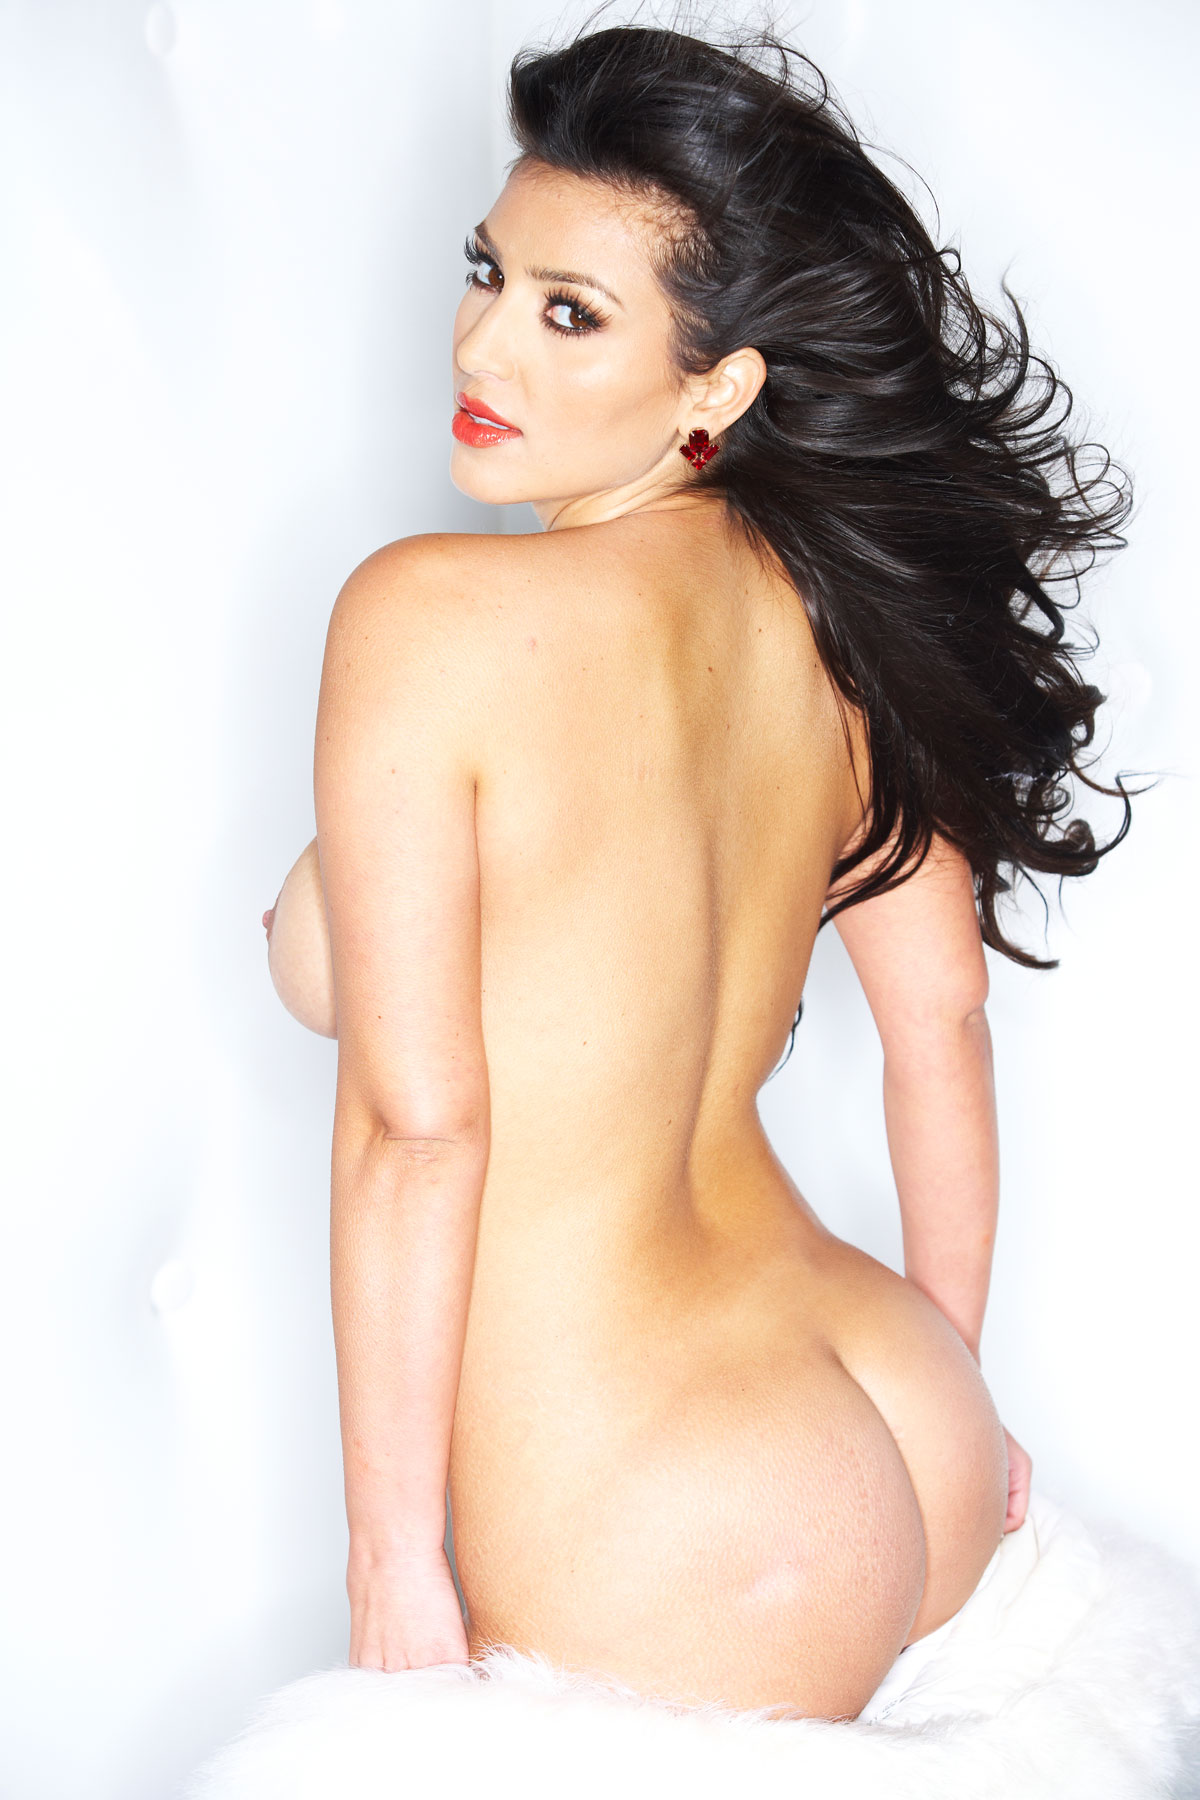 Free pictures of kim kardashian naked, katy perry hot naked showing ass